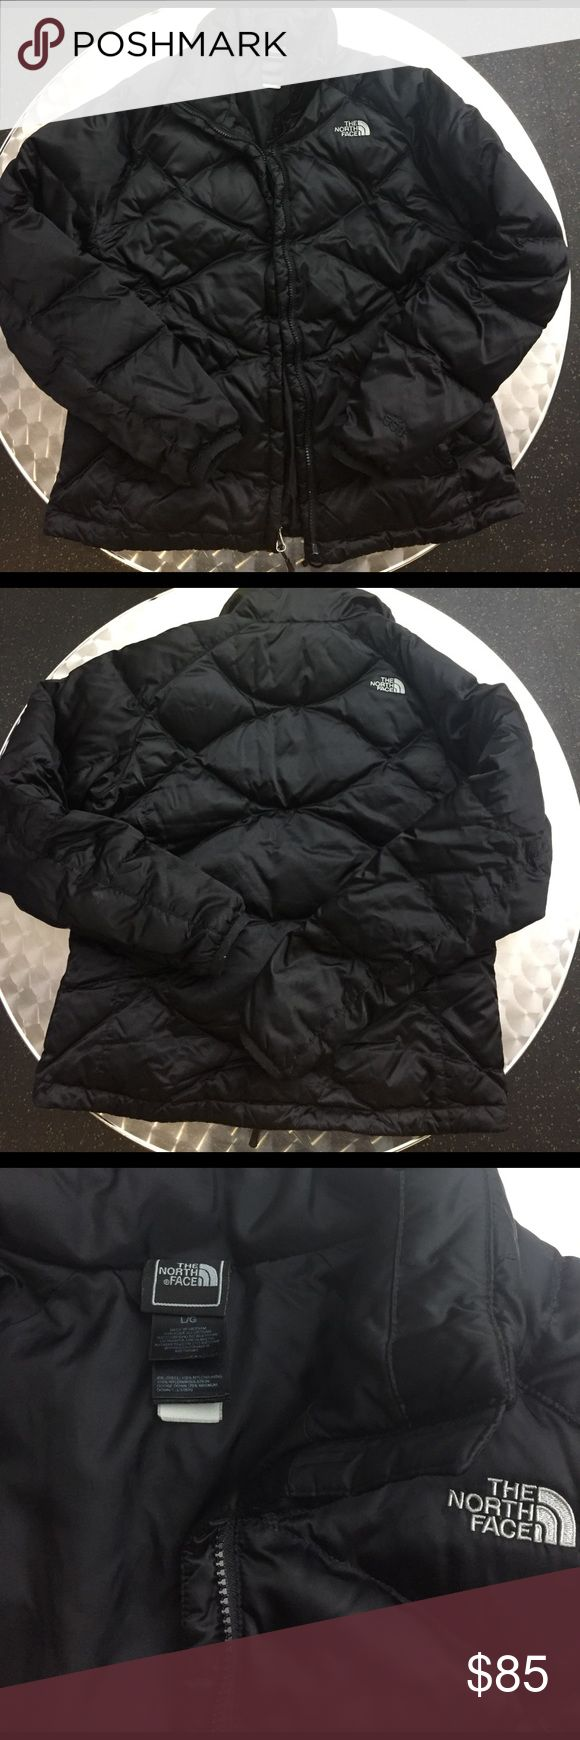 THE NORTH FACE Black Winter jacket 75%  Down insulated THE NORTH FACE winter jacket. In perfect condition! Size large! The North Face Jackets & Coats Puffers